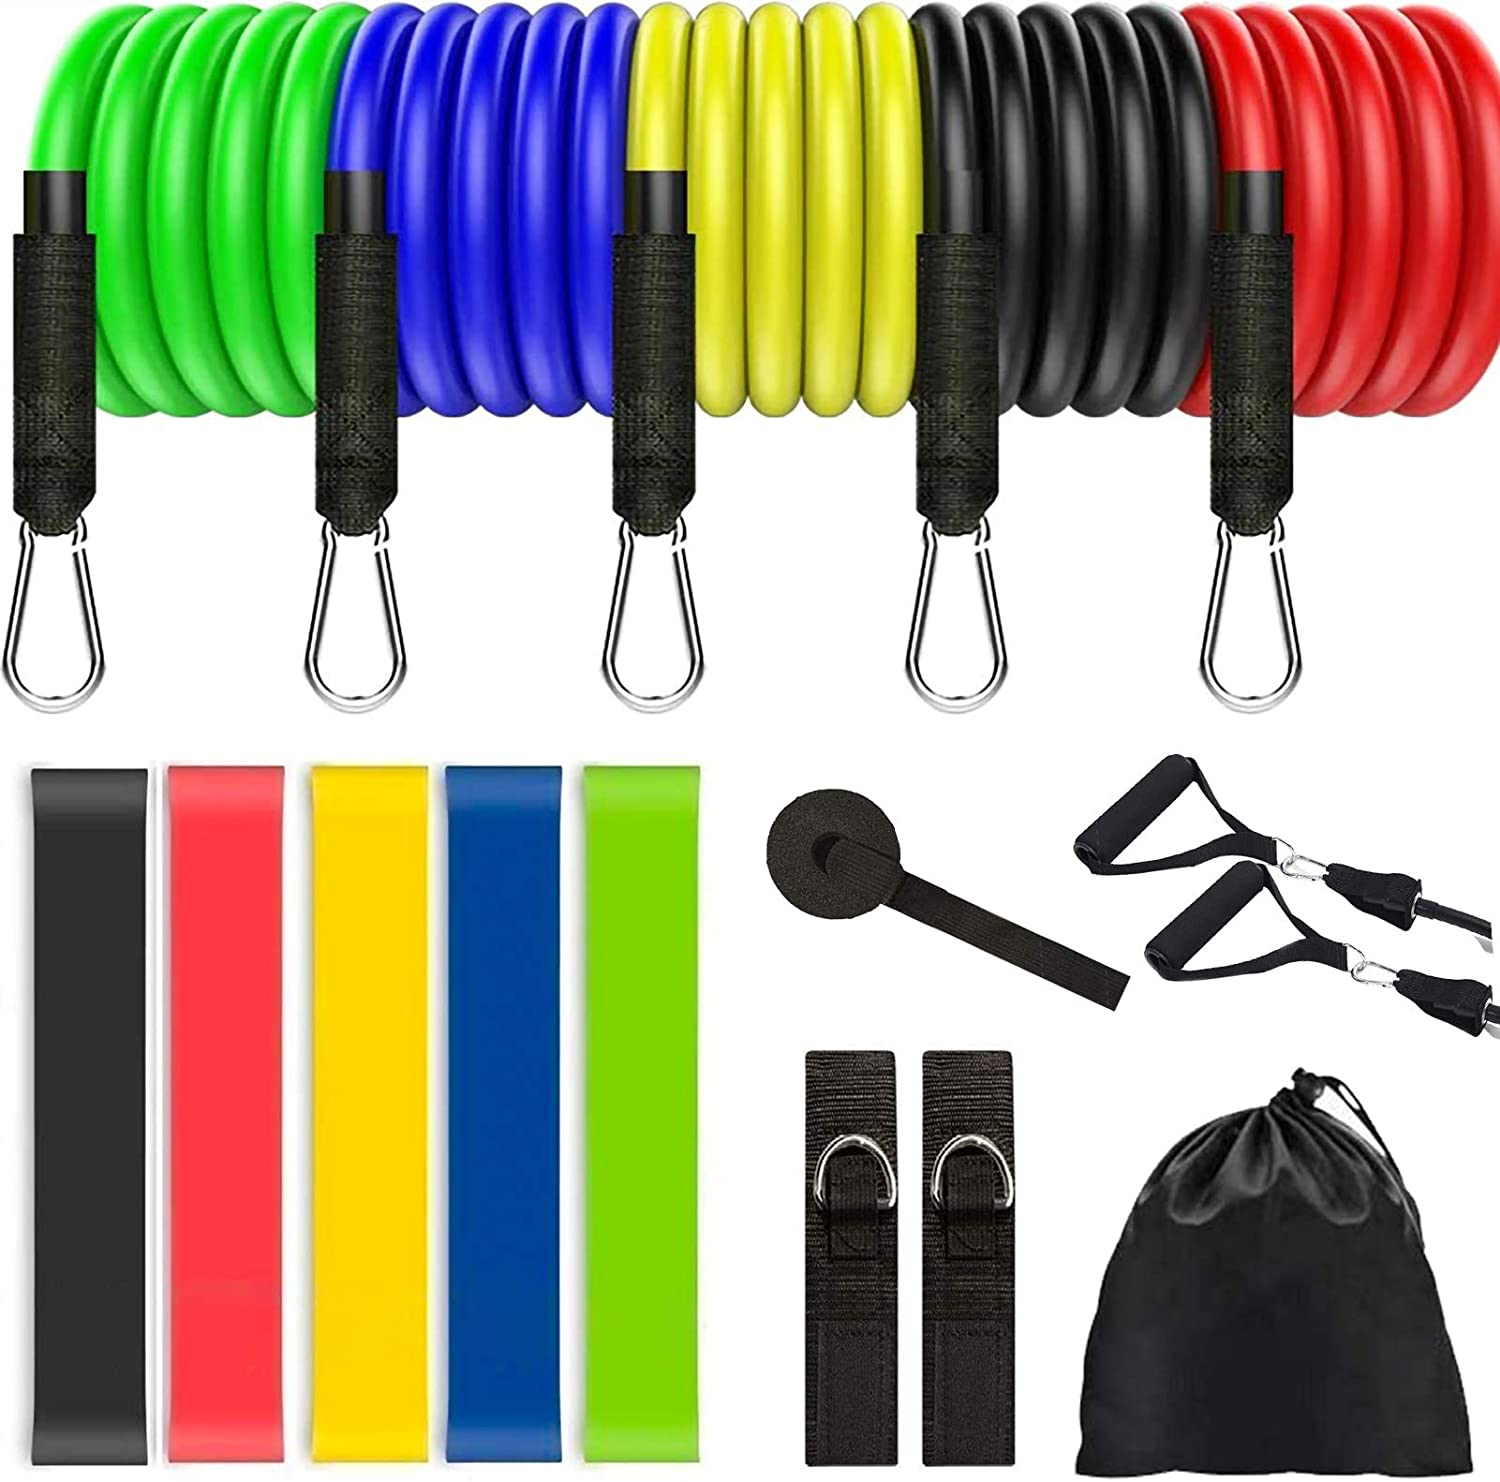 Door Anchor Waterproof Carry Bag 5 Stackable Workout Bands Standfit Resistance Bands Set Glutes Pilates Yoga Perfect for Physical Therapy Handles Exercise Bands Include Legs Ankle Straps